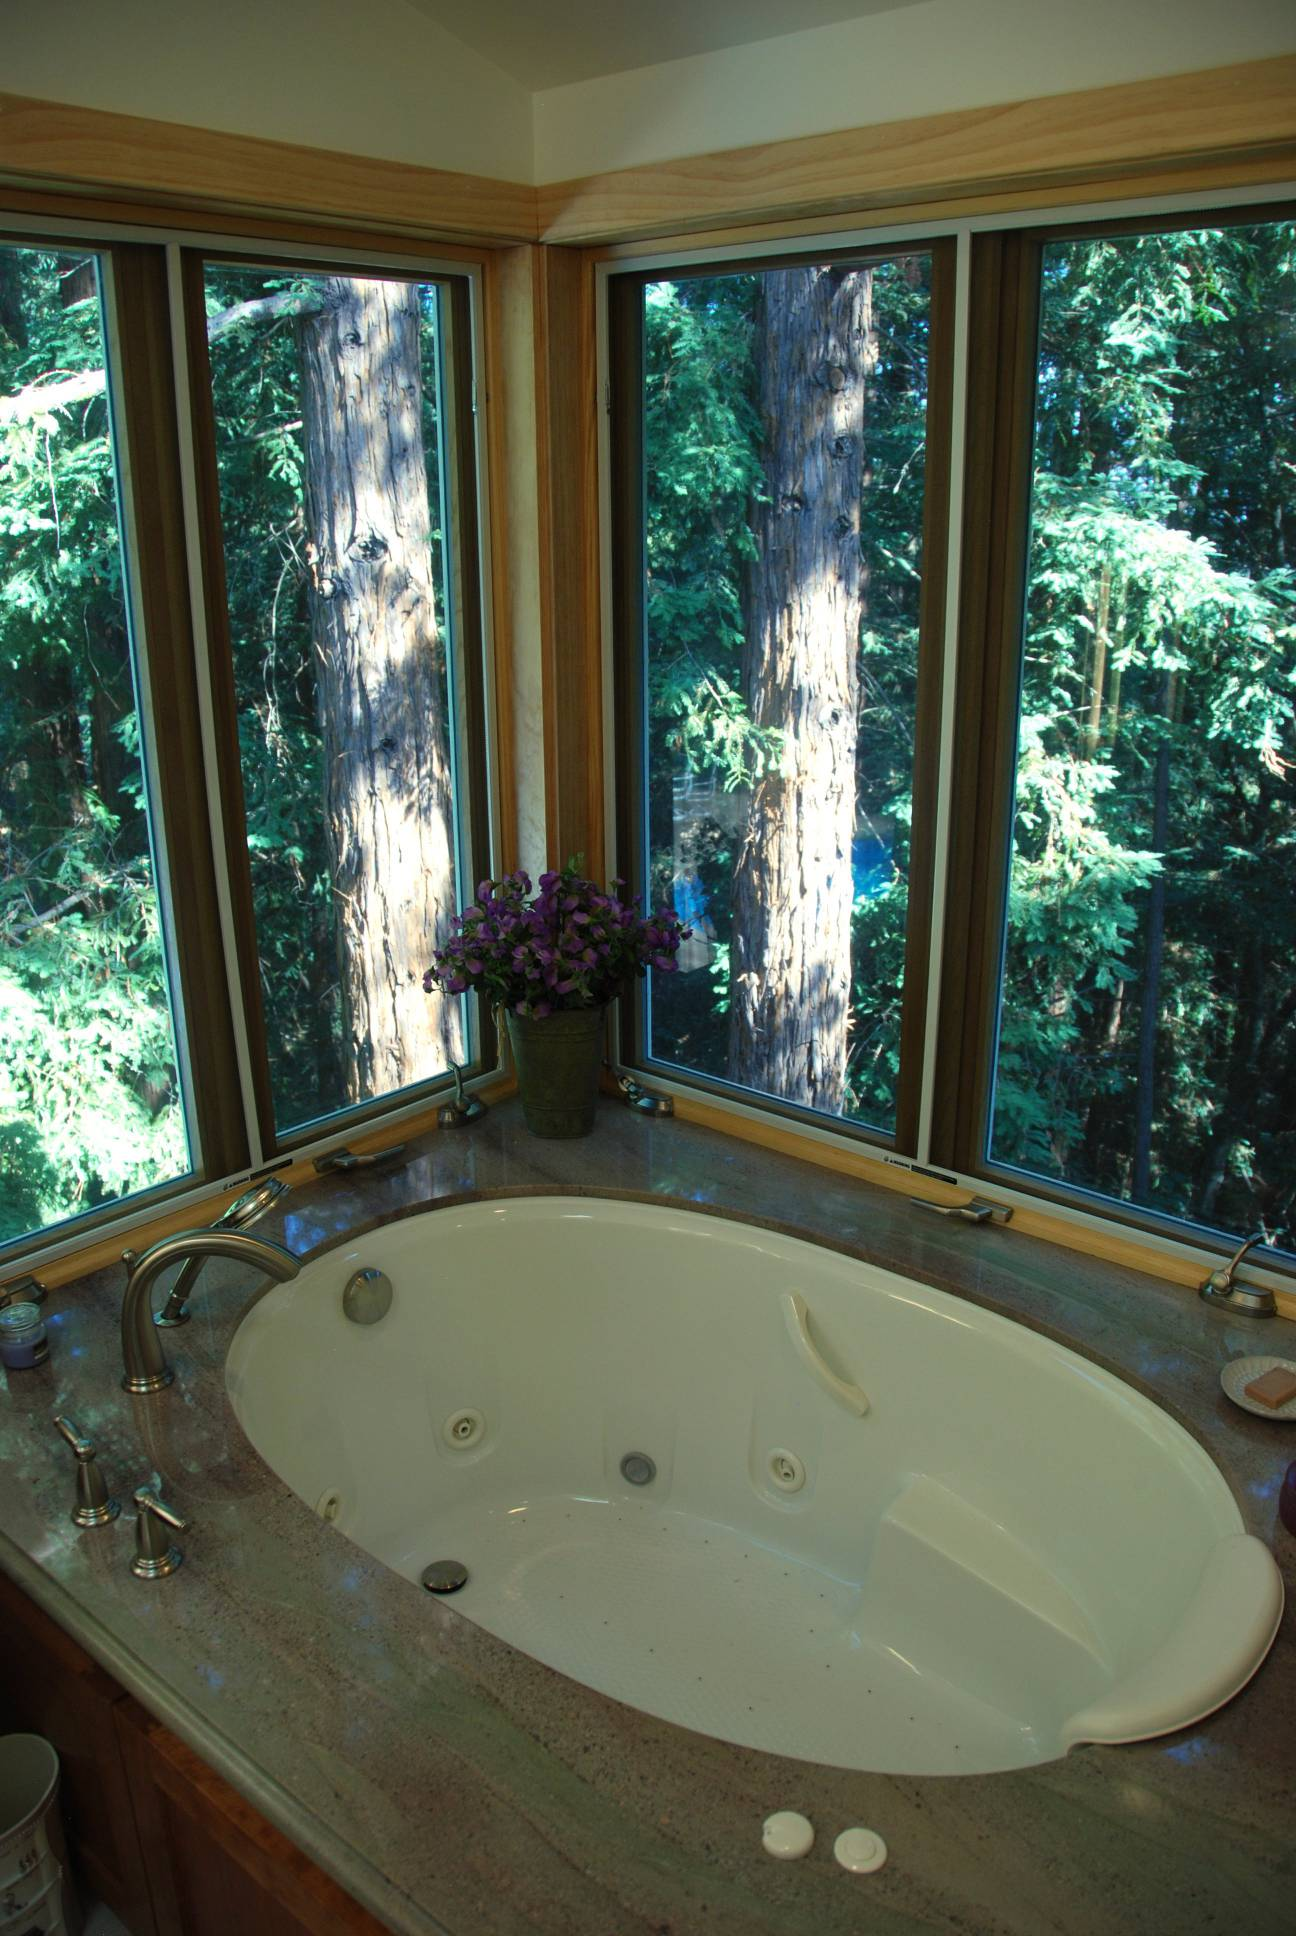 Whirlpool jacuzzi with view, Architect design, interior design work, Woodside